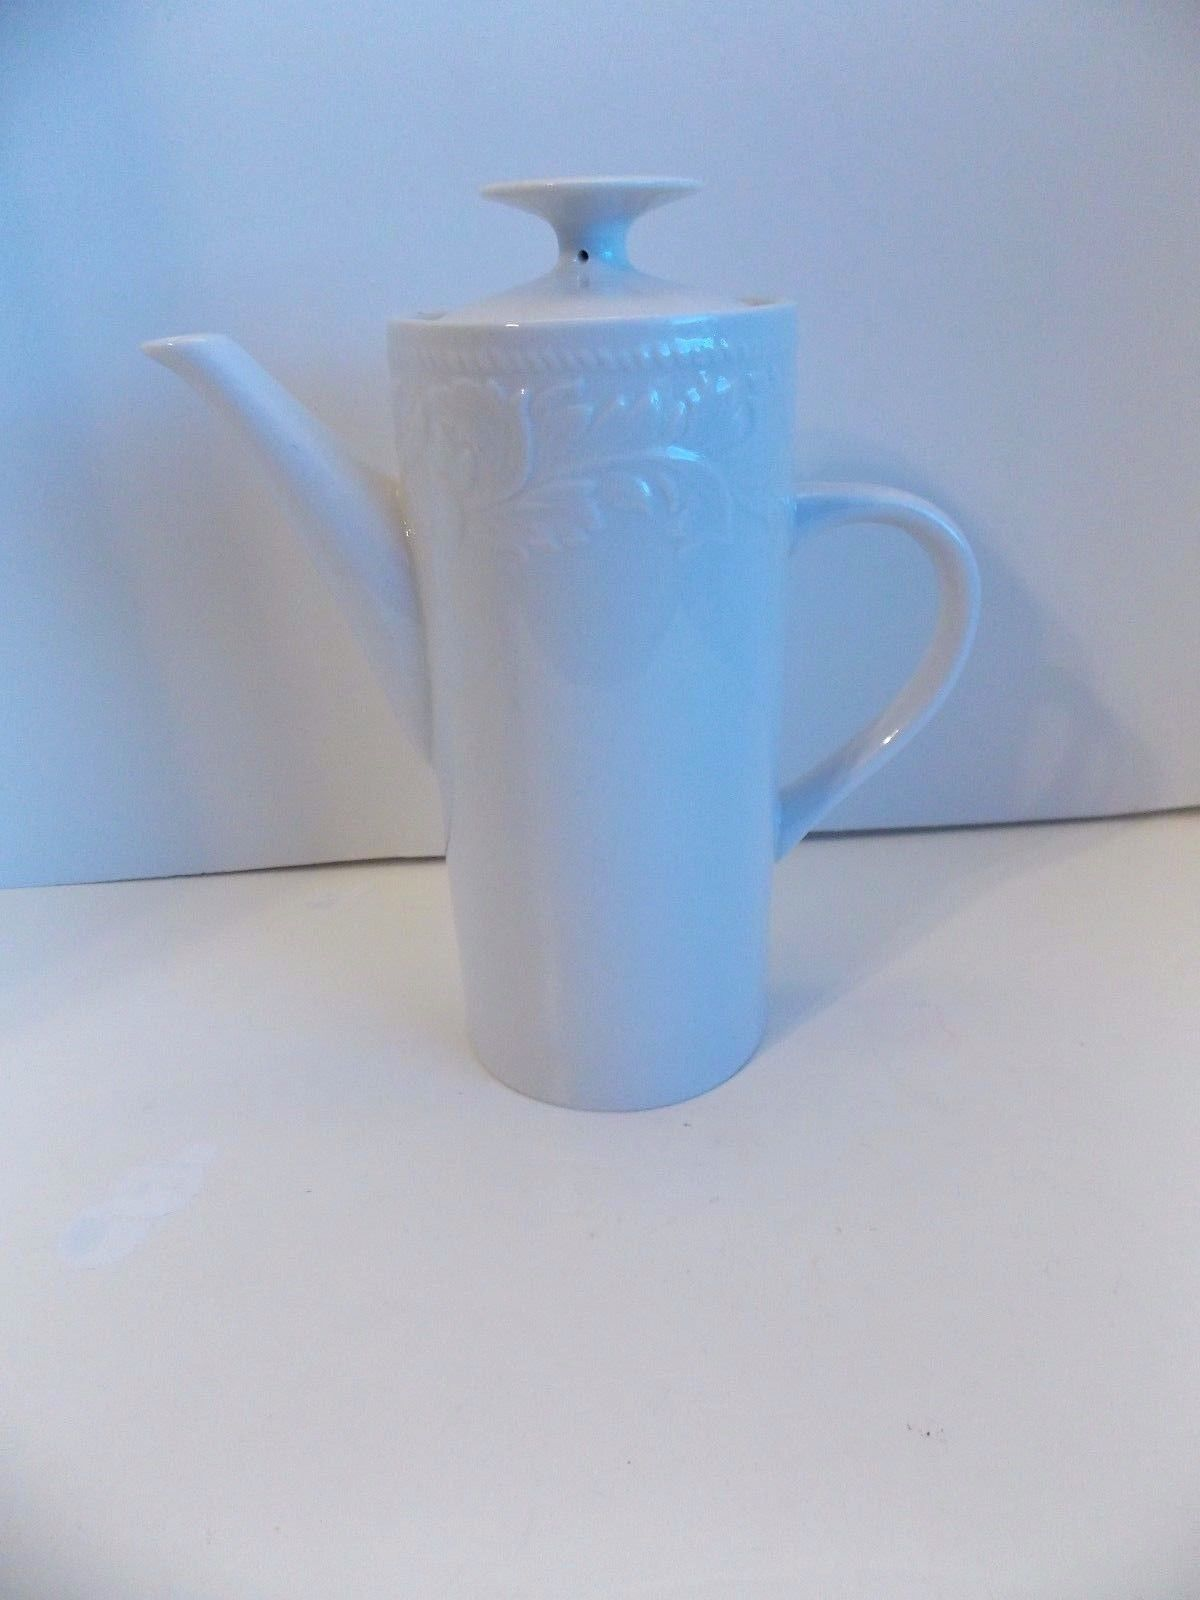 Sango Pitcher with Lid # 8837 - $9.80